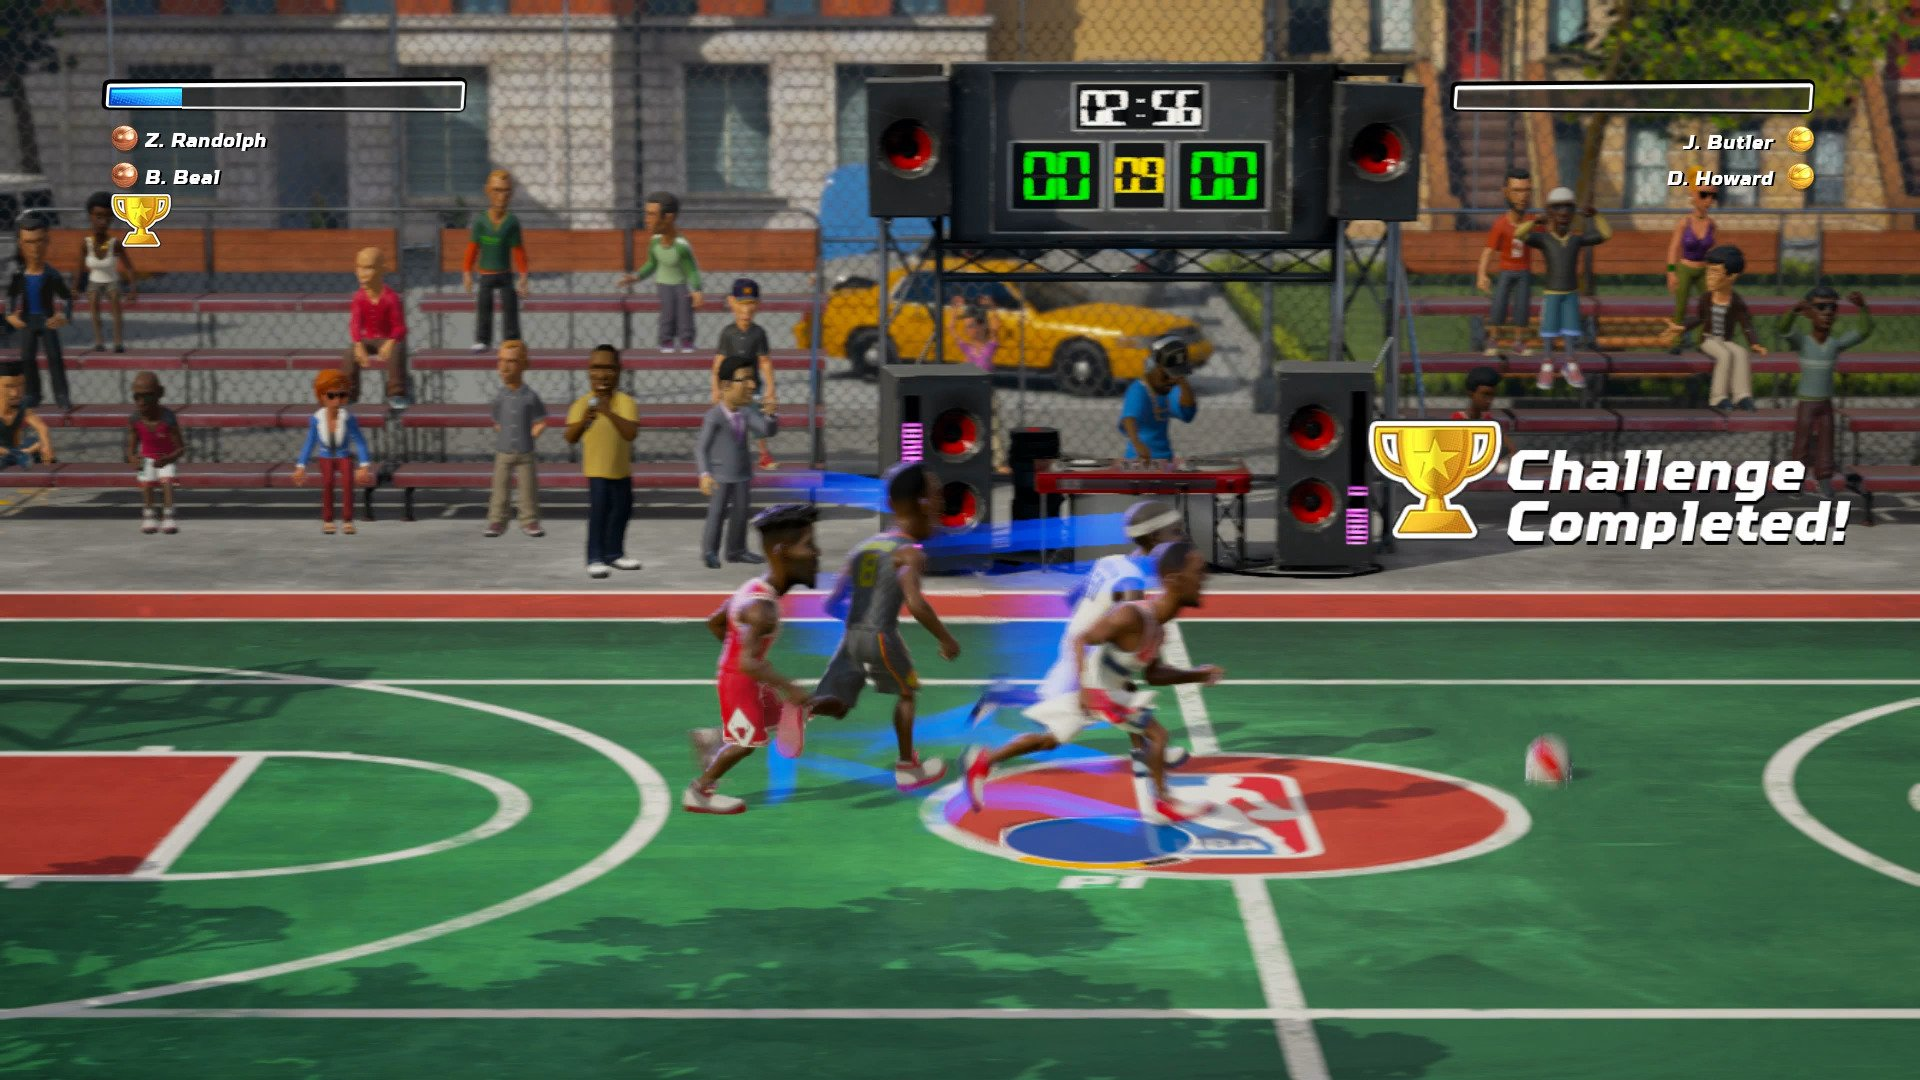 Nba Playgrounds For Xbox One Review A Basketball Game